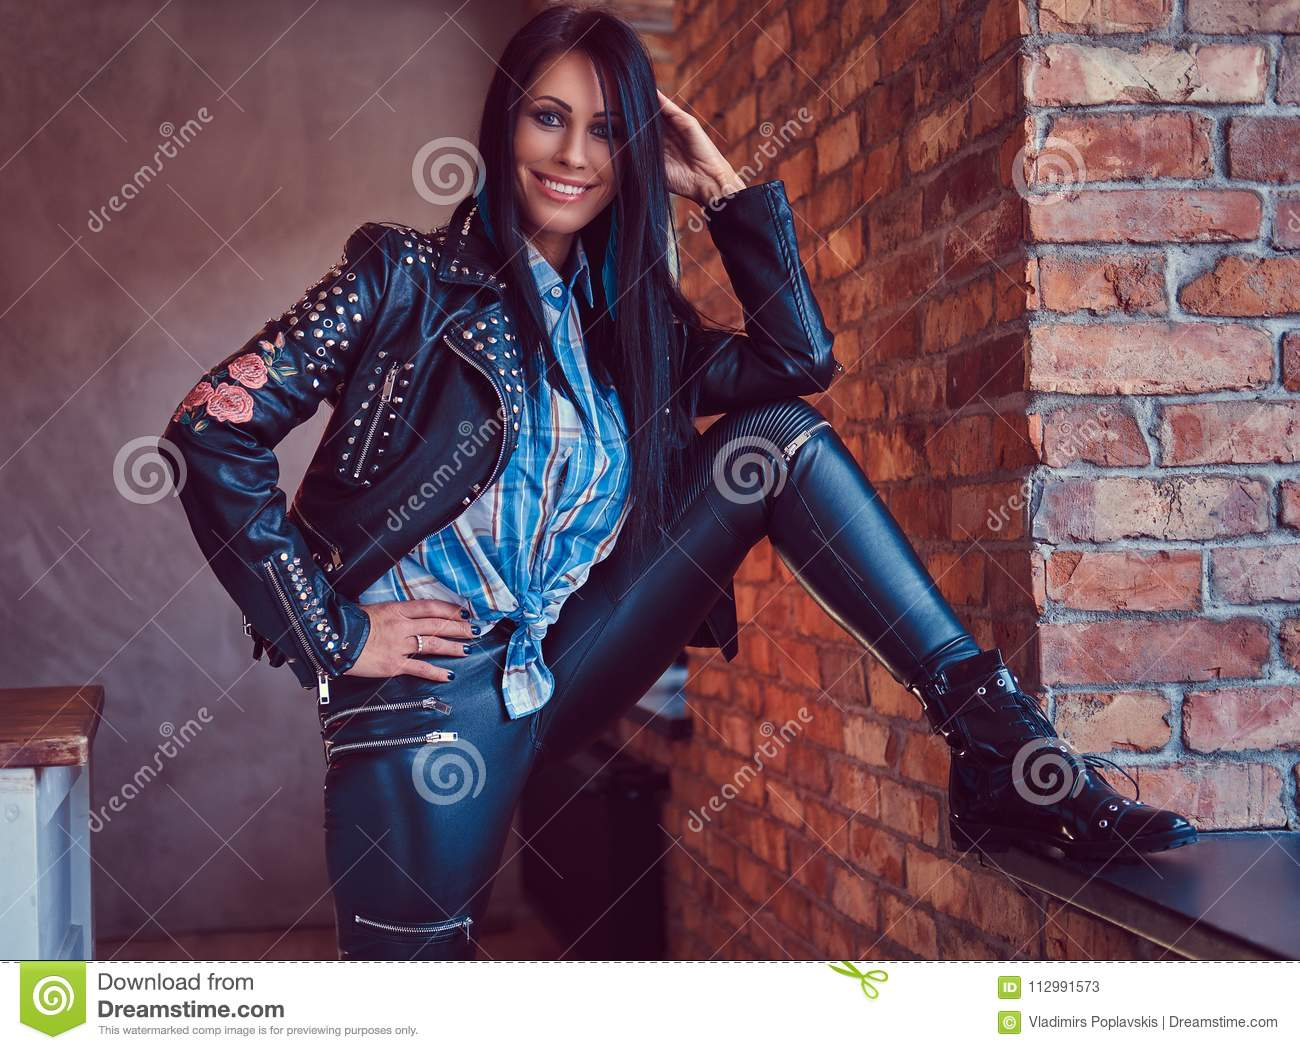 Portrait of a charming brunette posing in a stylish leather jacket and jeans while leaning foot on the window sill.